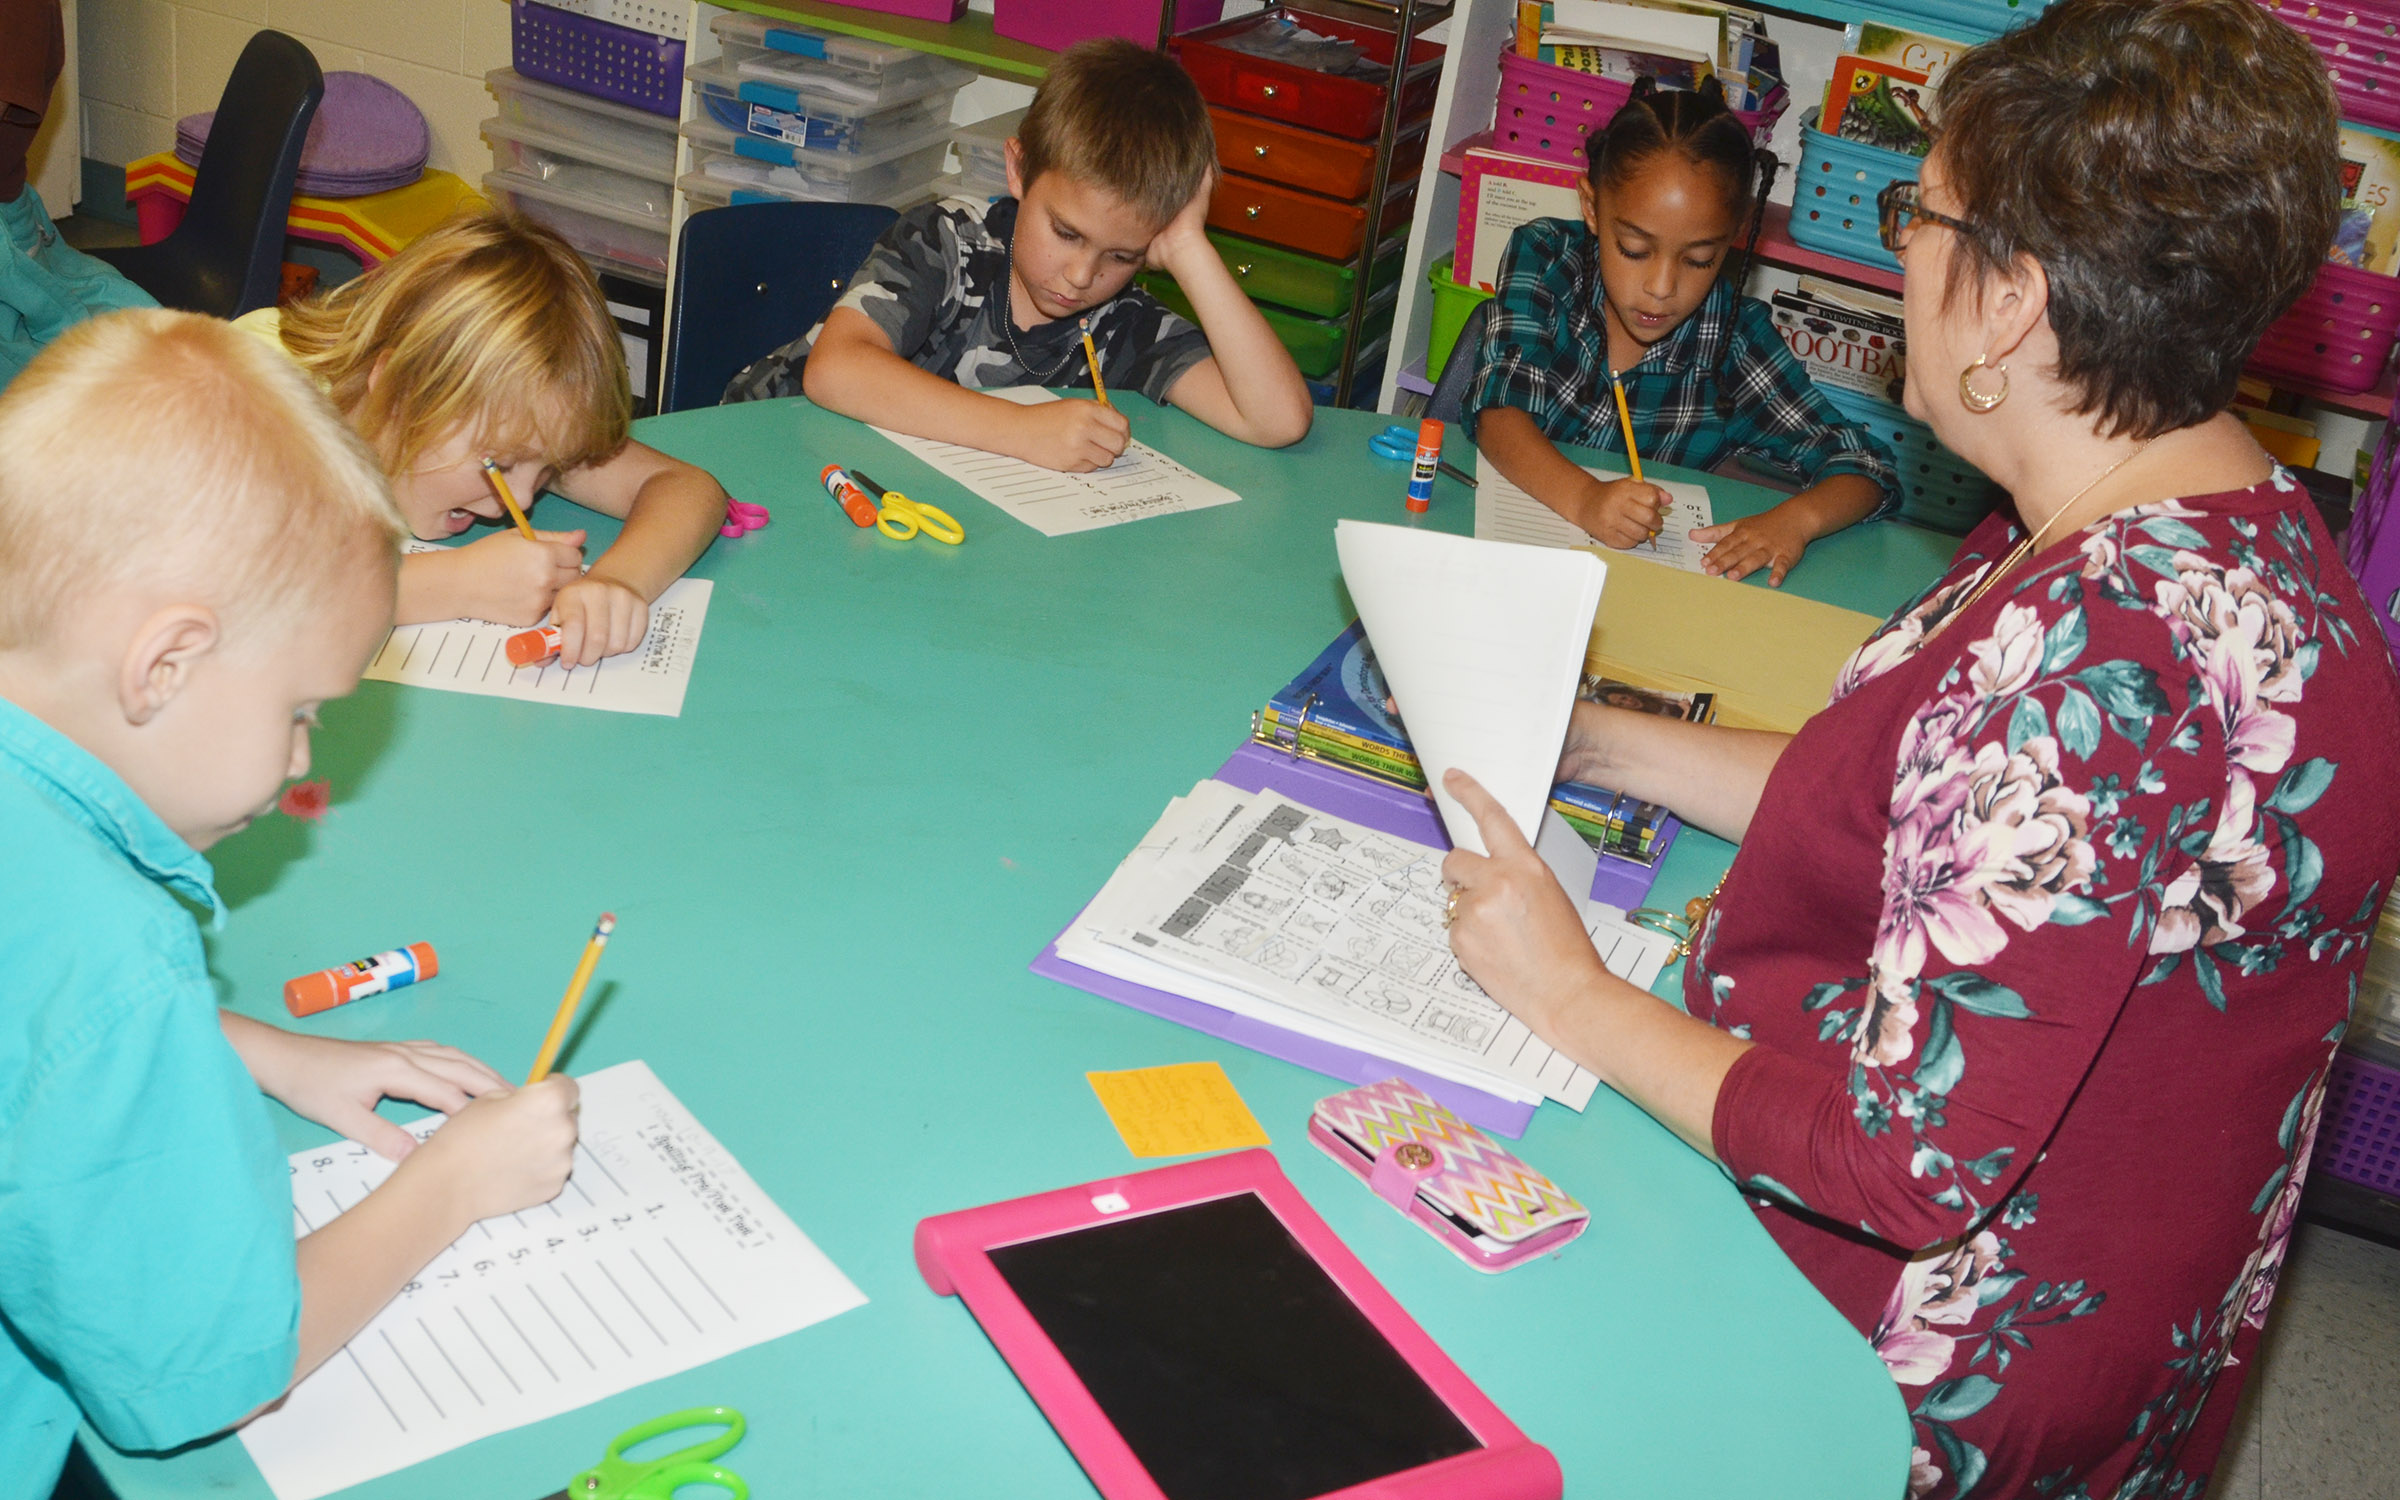 CES second-grade teacher Lynne Horn administers a pre-test for students, from left, Chase Gabbert, Mylee Bell, Nikolas Torres and Essence Hunter.